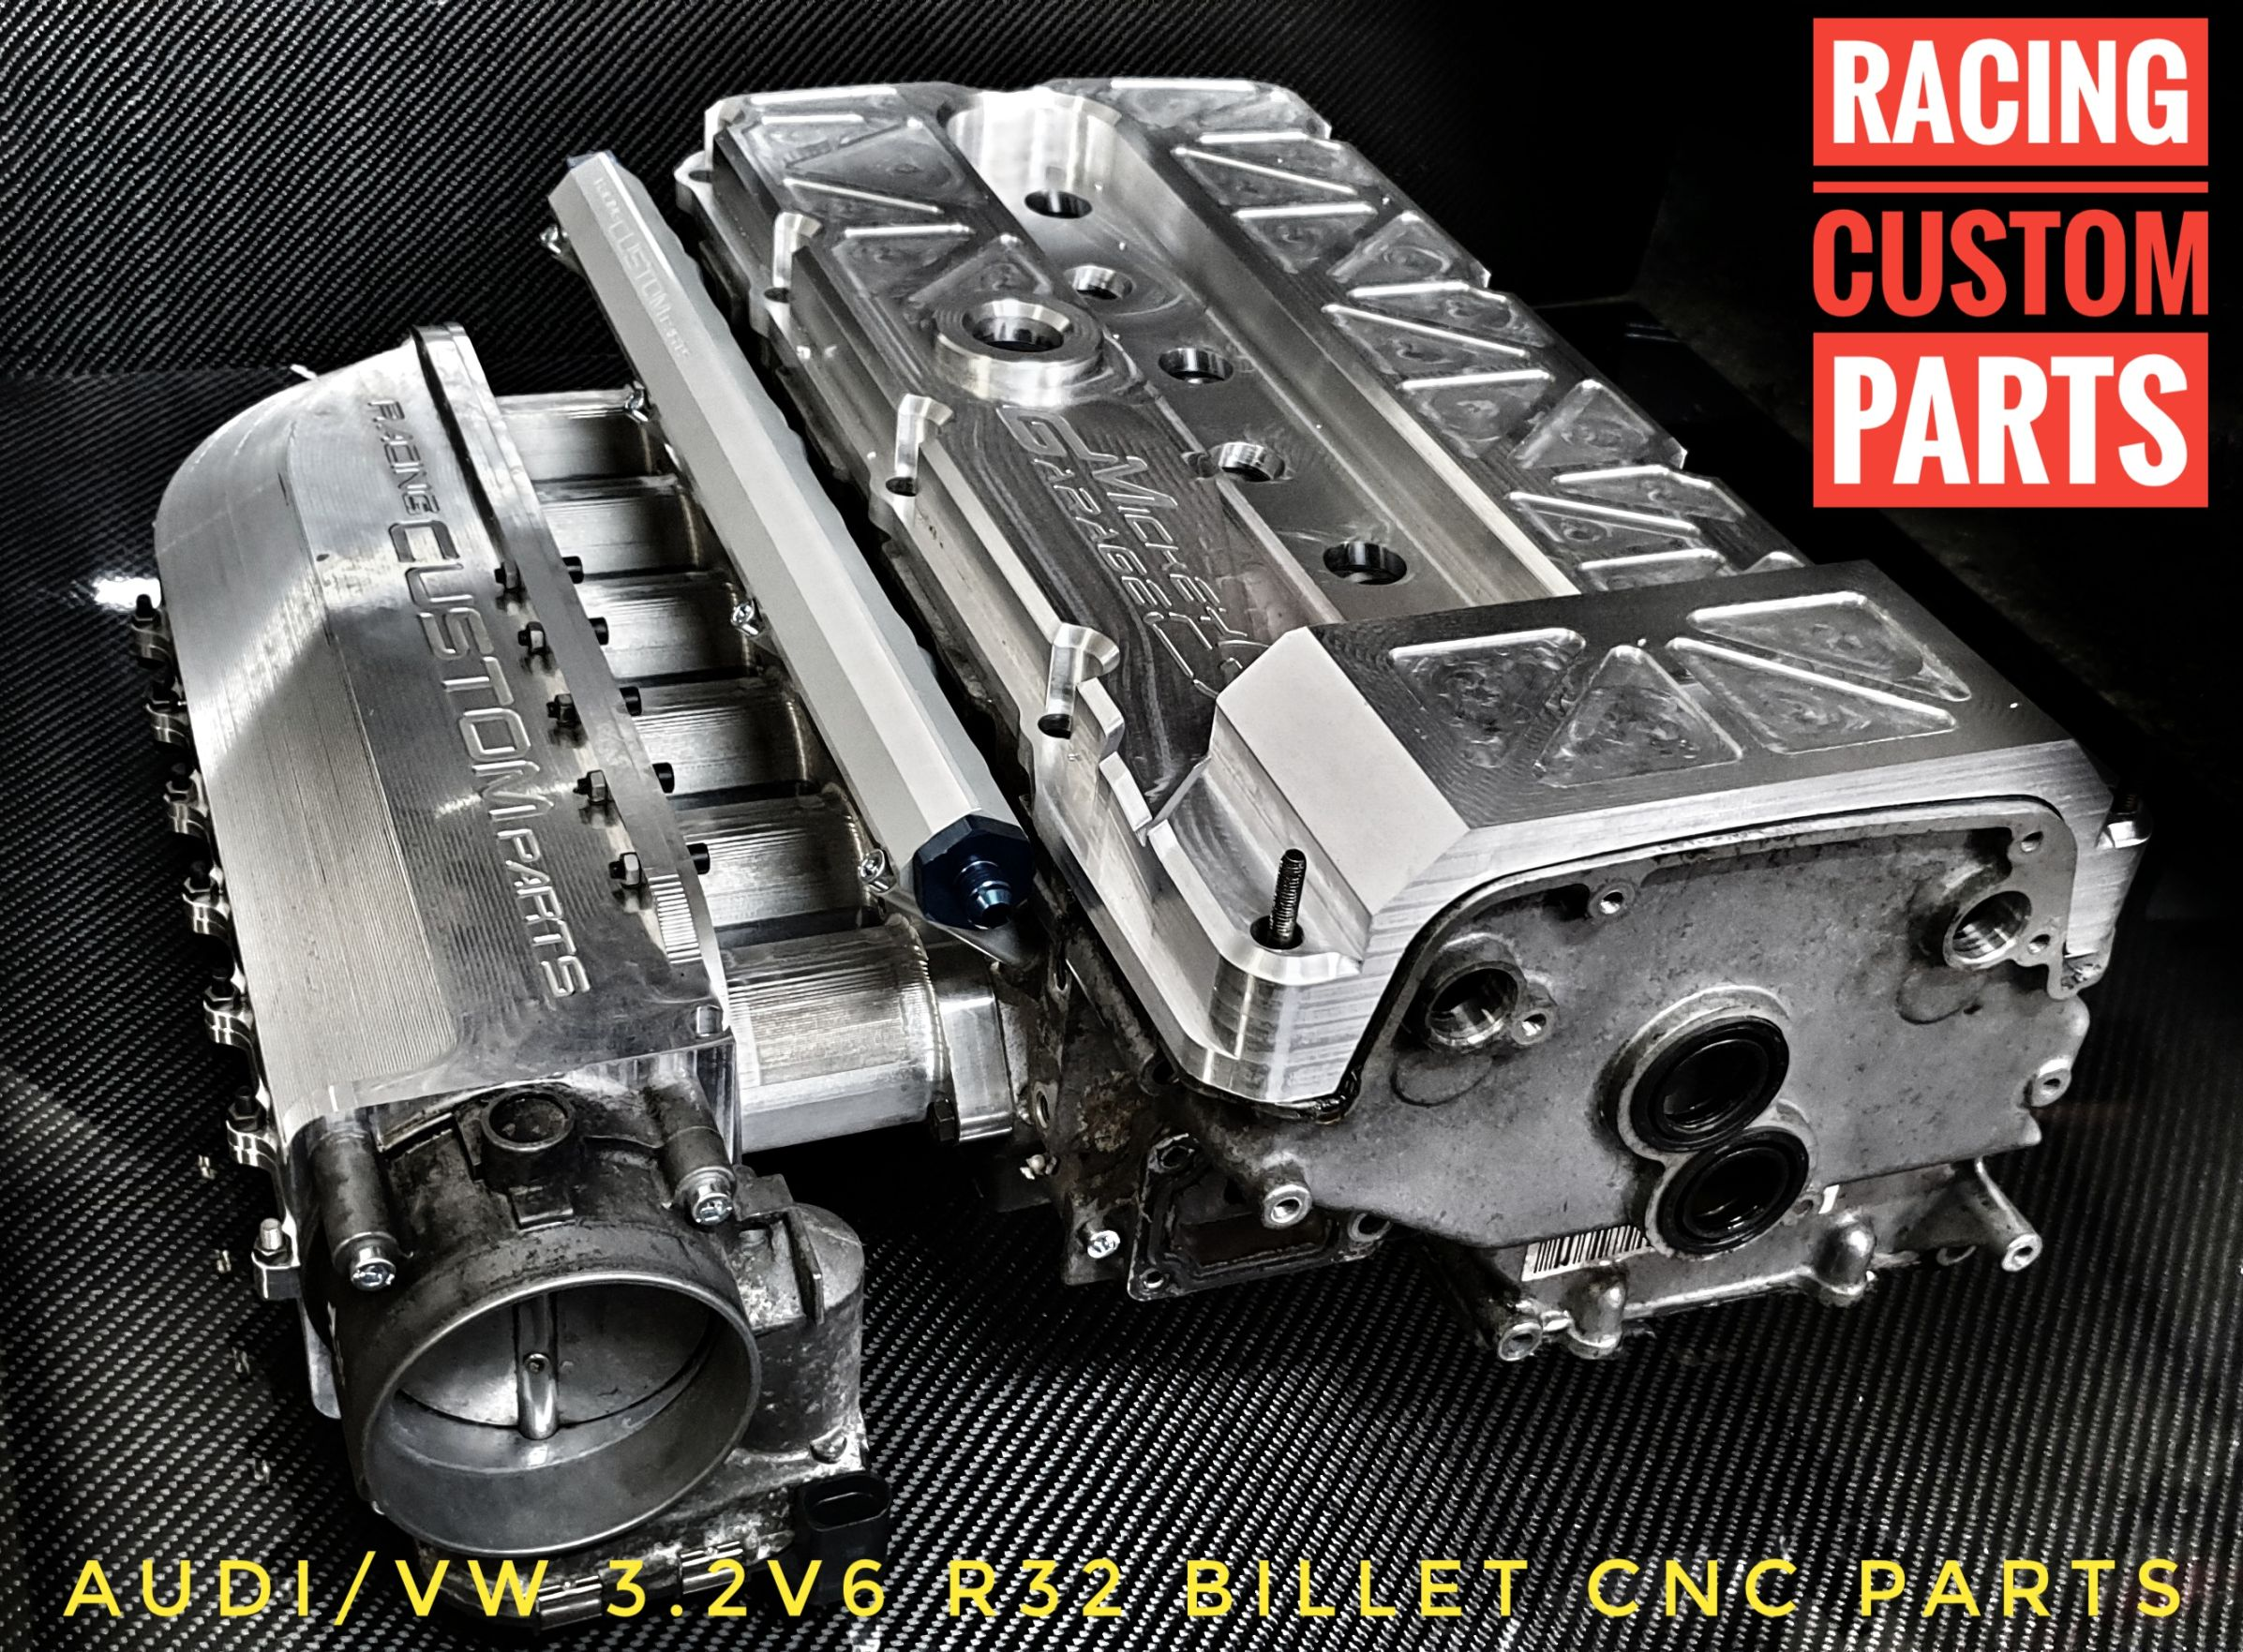 R32 3,2 V6 Audi / VW Billet cnc custom intake manifold turbo cnc racing custom parts